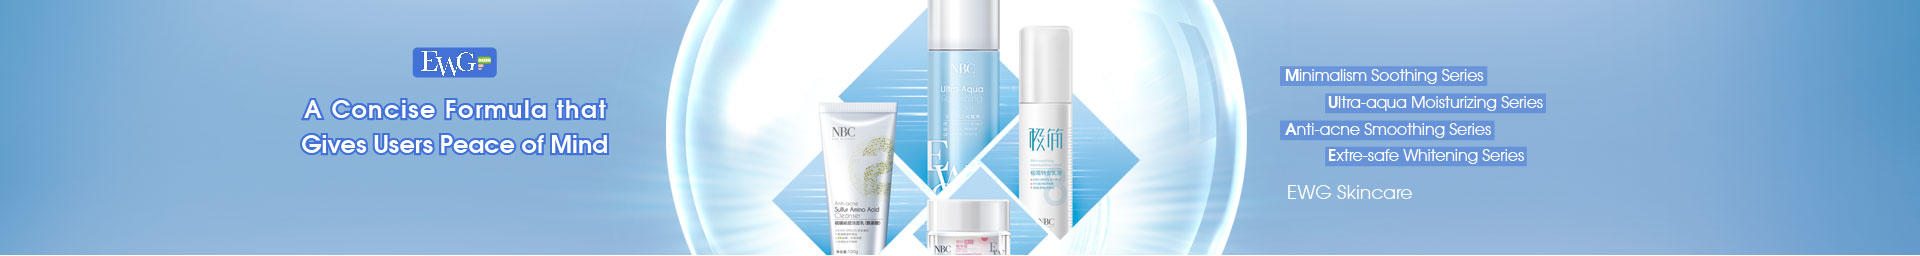 news-NOX BELLCOW-Face Masks for Skin Care-img